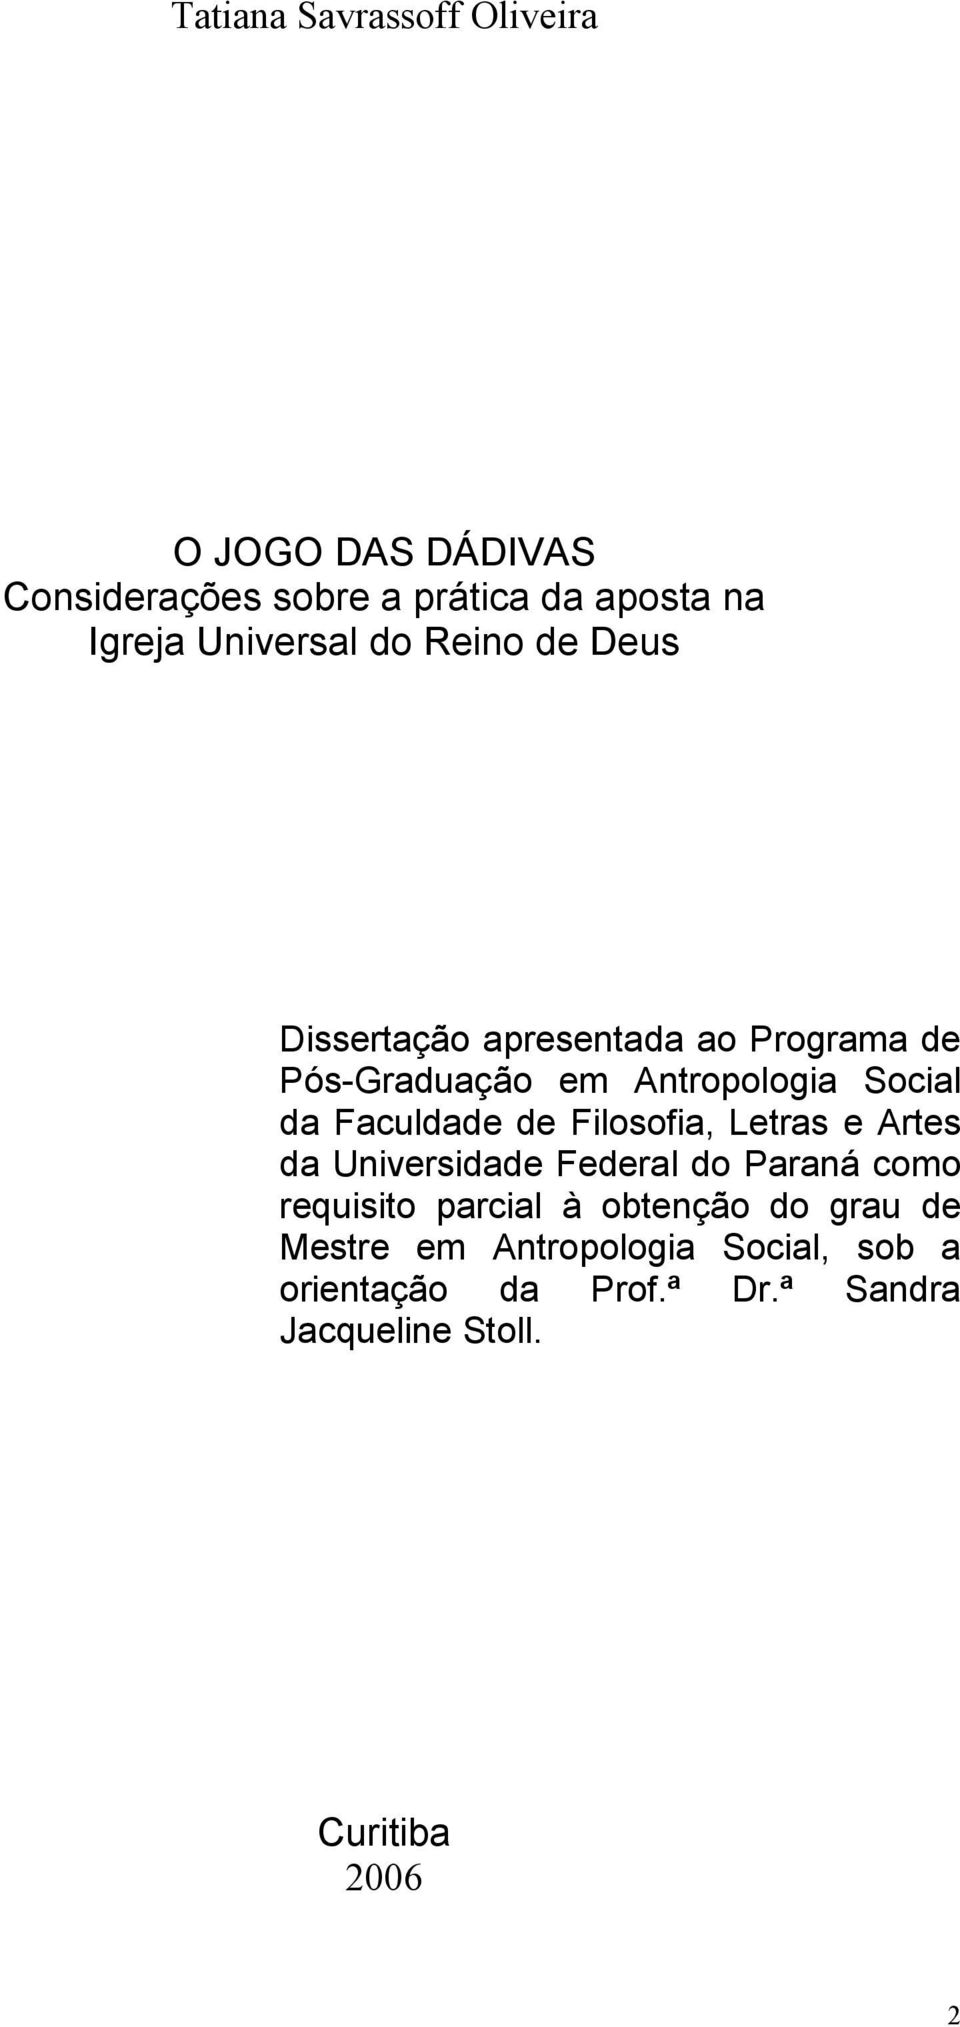 Faculdade de Filosofia, Letras e Artes da Universidade Federal do Paraná como requisito parcial à